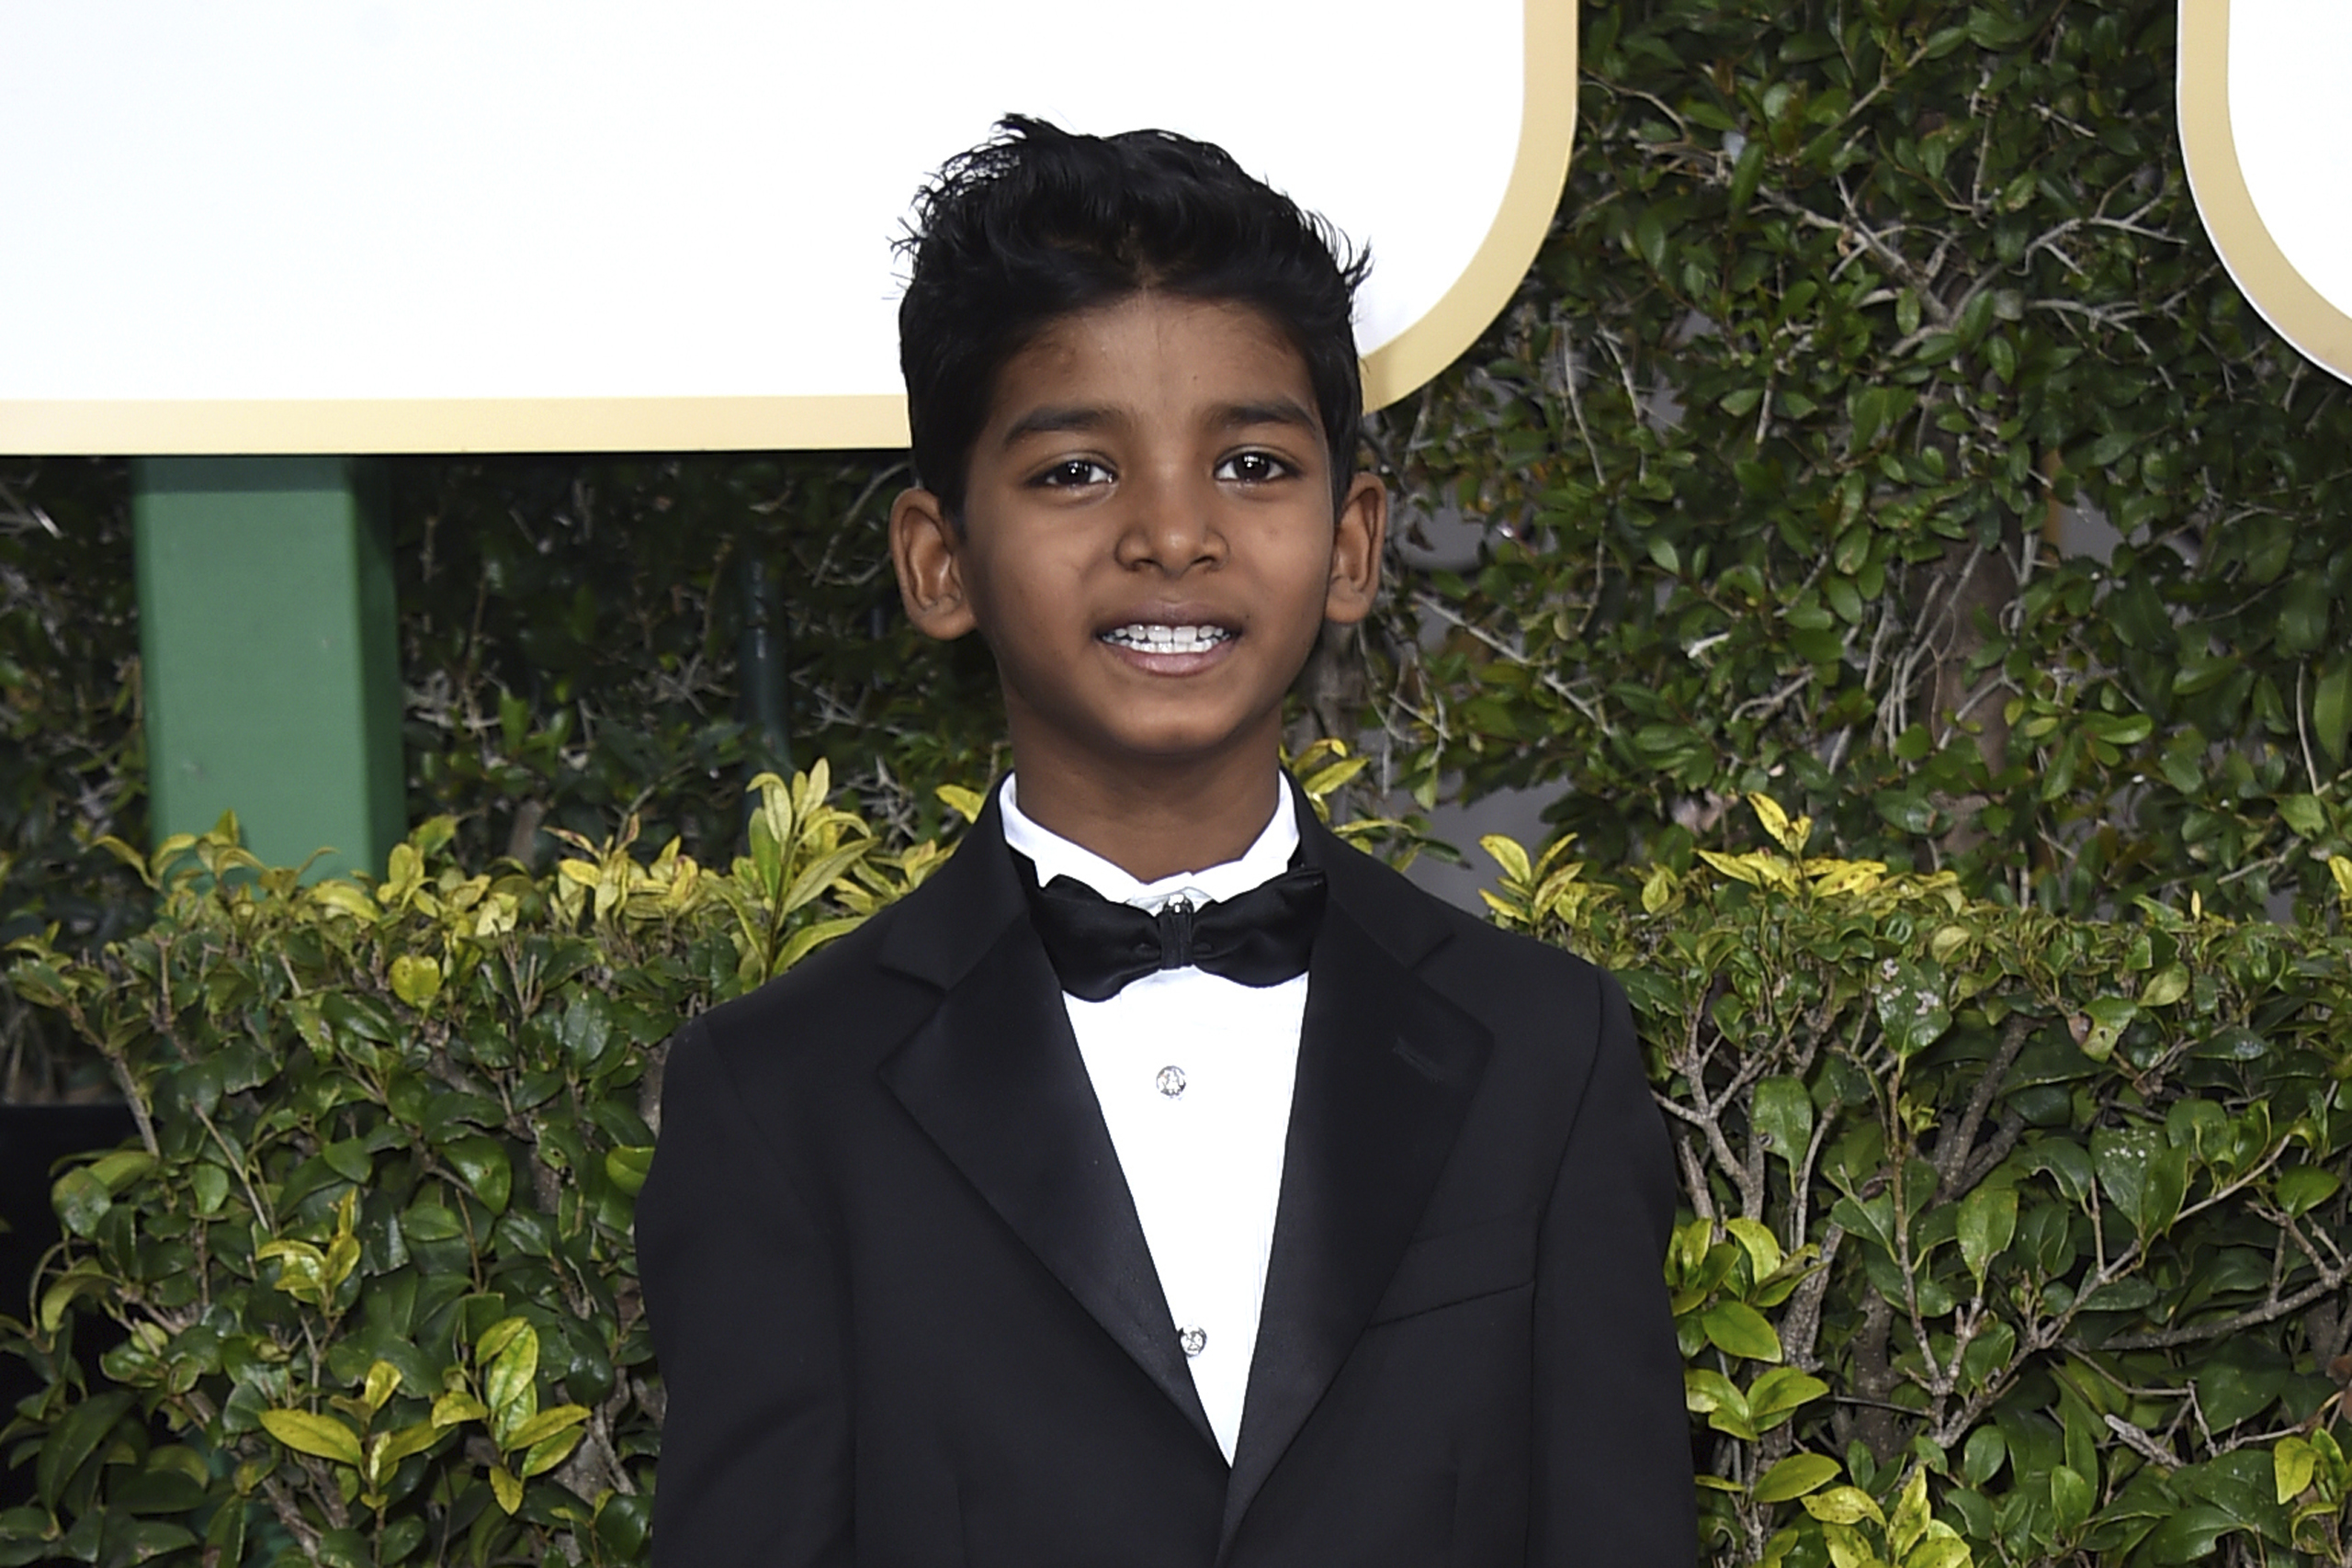 Sunny Pawar arrives at the 74th annual Golden Globe Awards at the Beverly Hilton Hotel in Beverly Hills, Calif., on Jan. 8, 2017.